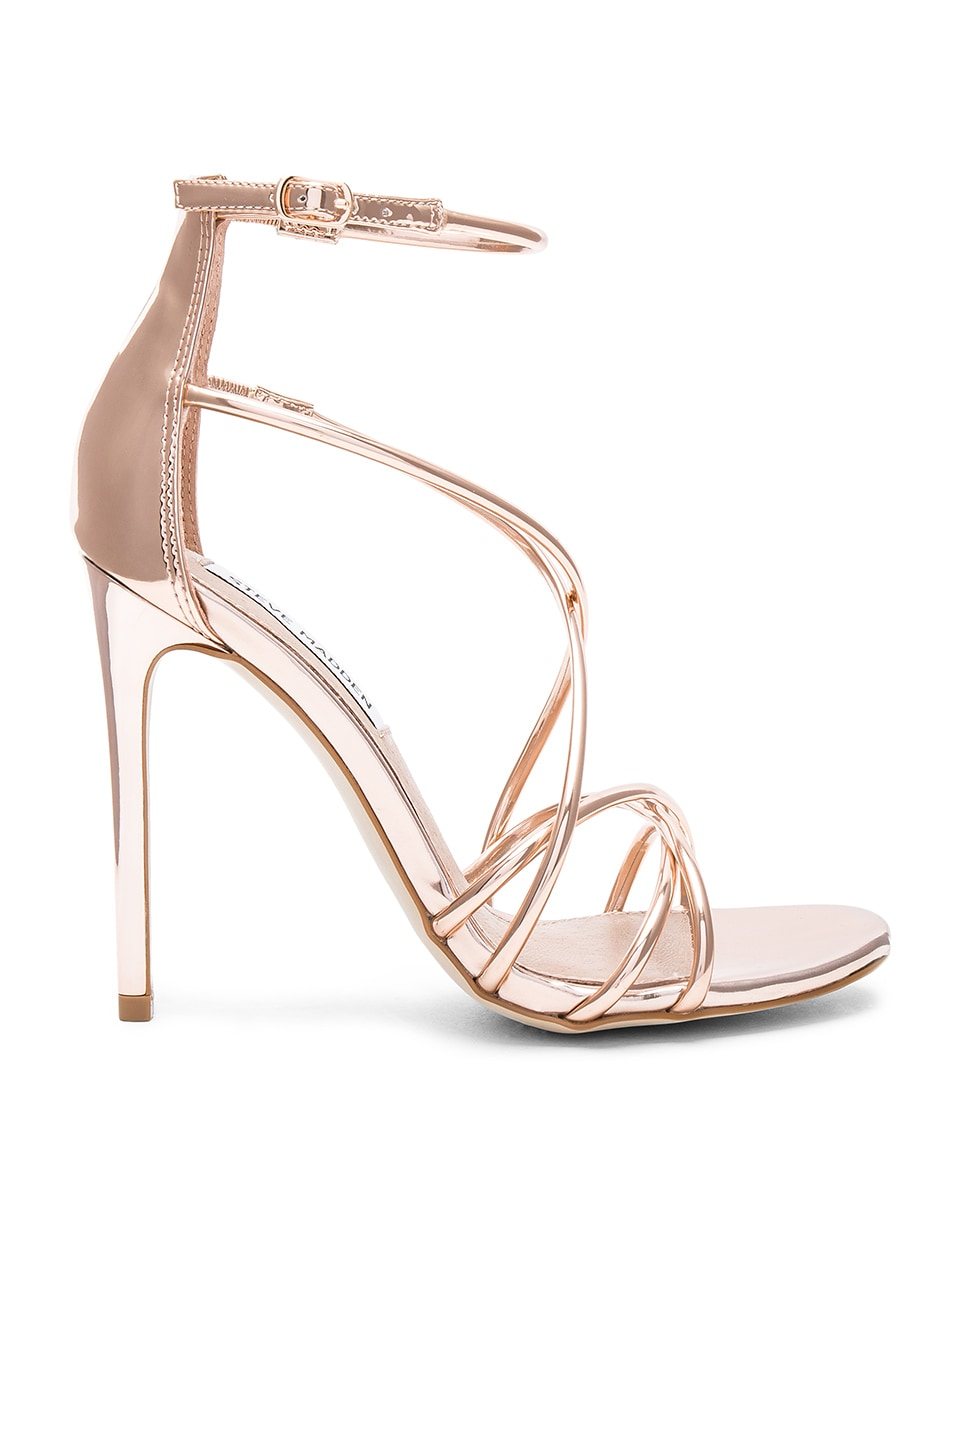 Steve Madden Satire Heel in Rose Gold